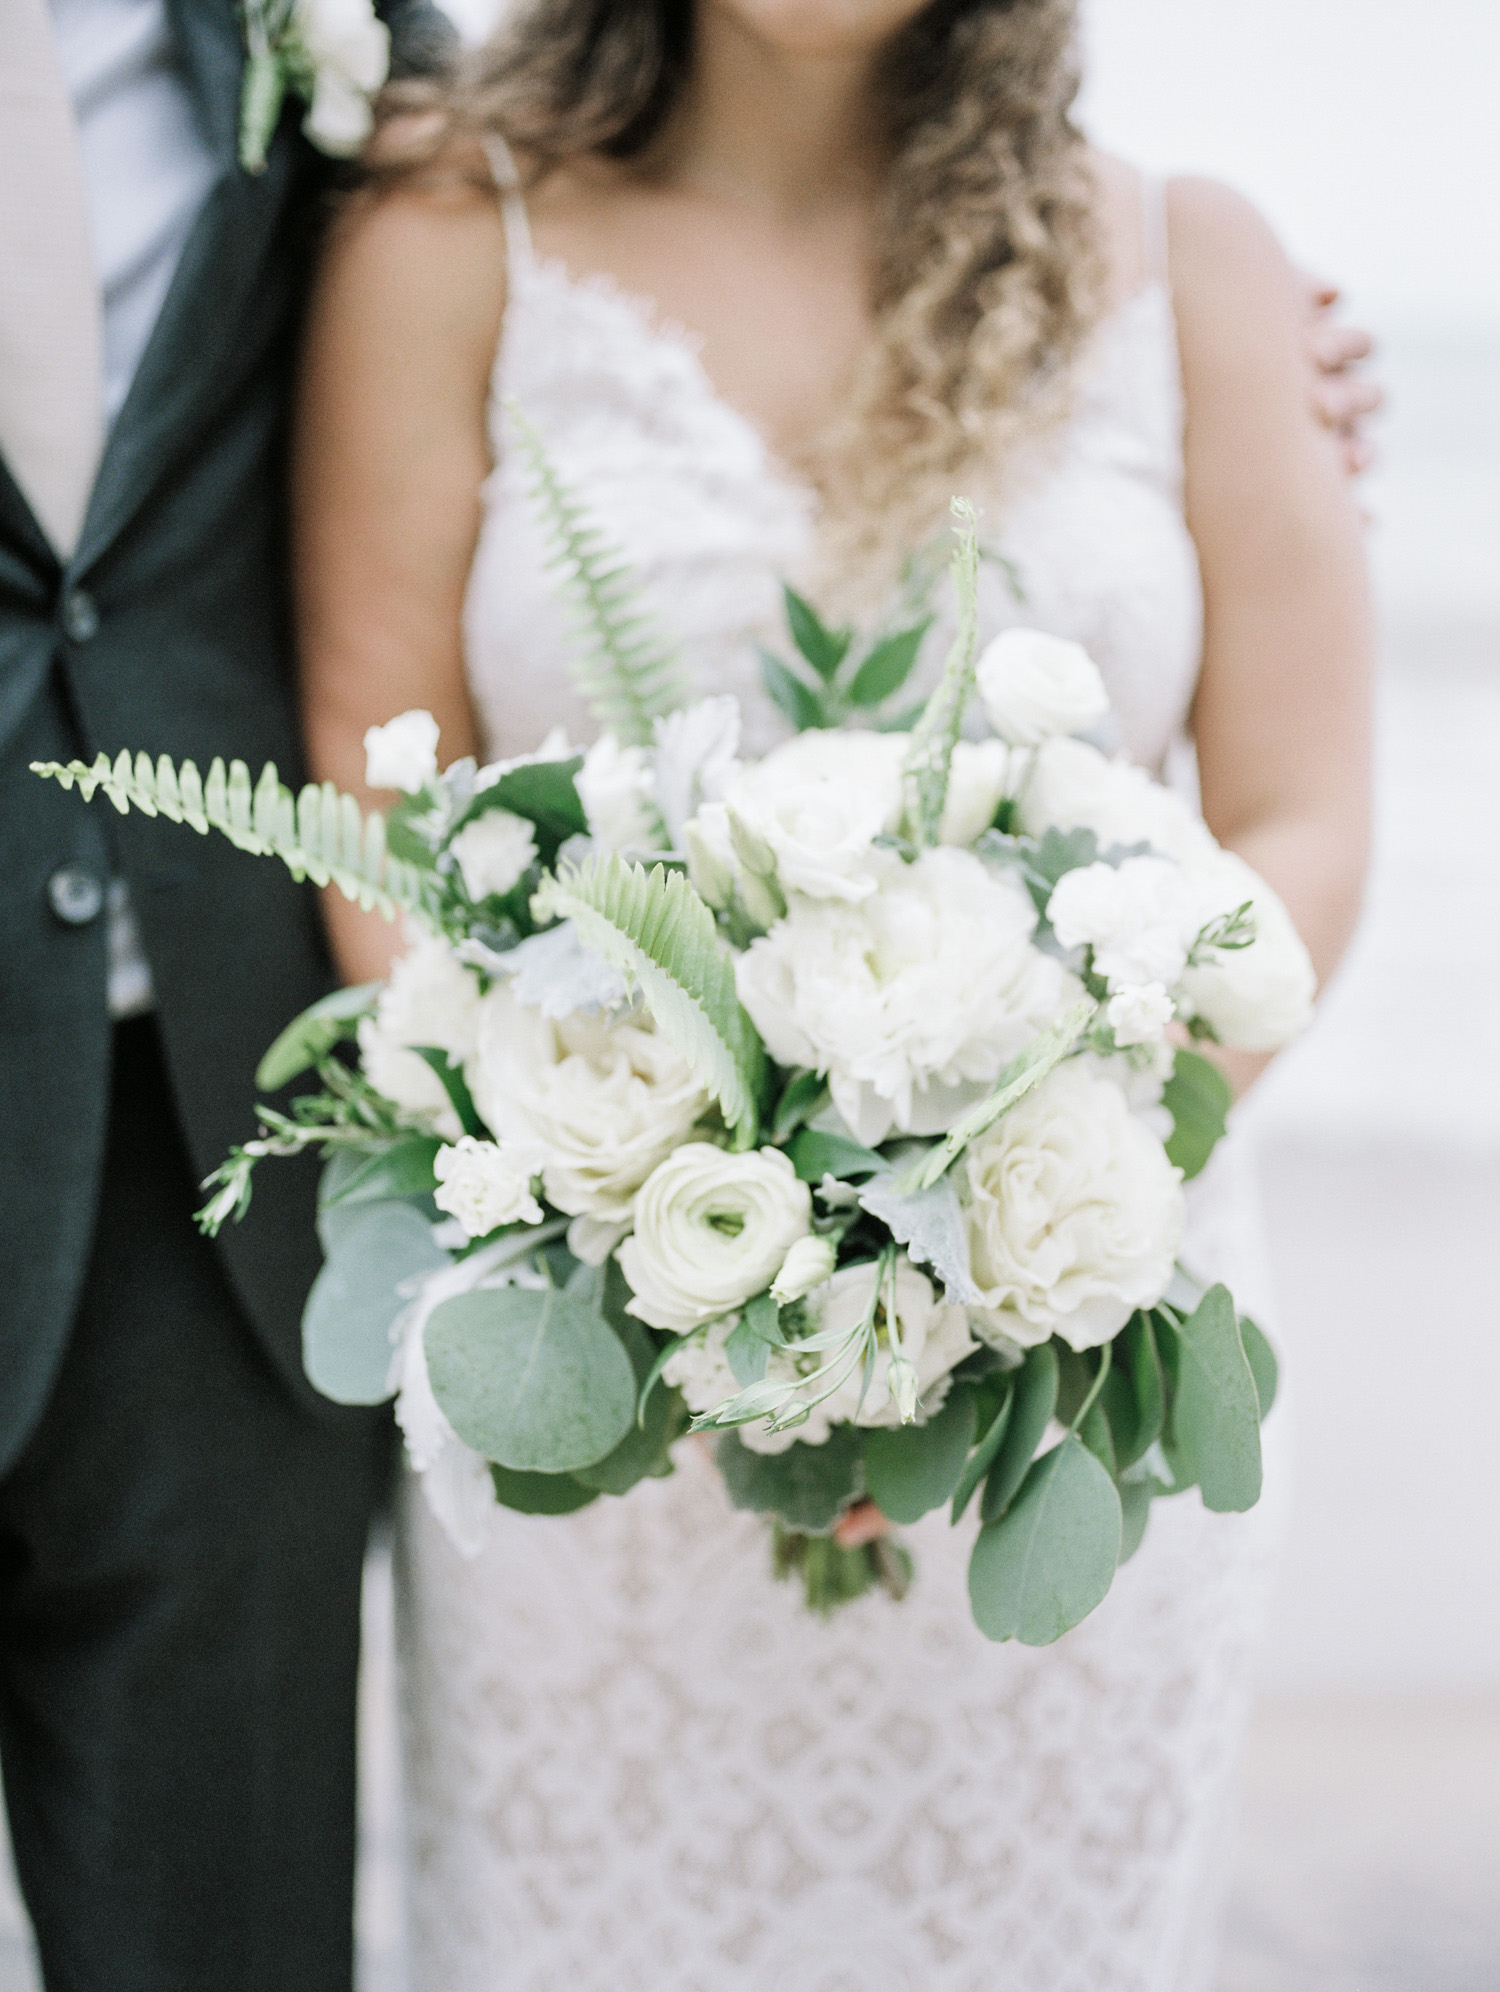 An organic wedding bouquet of white and green with ferns, held by a bride at her Lake Michigan wedding